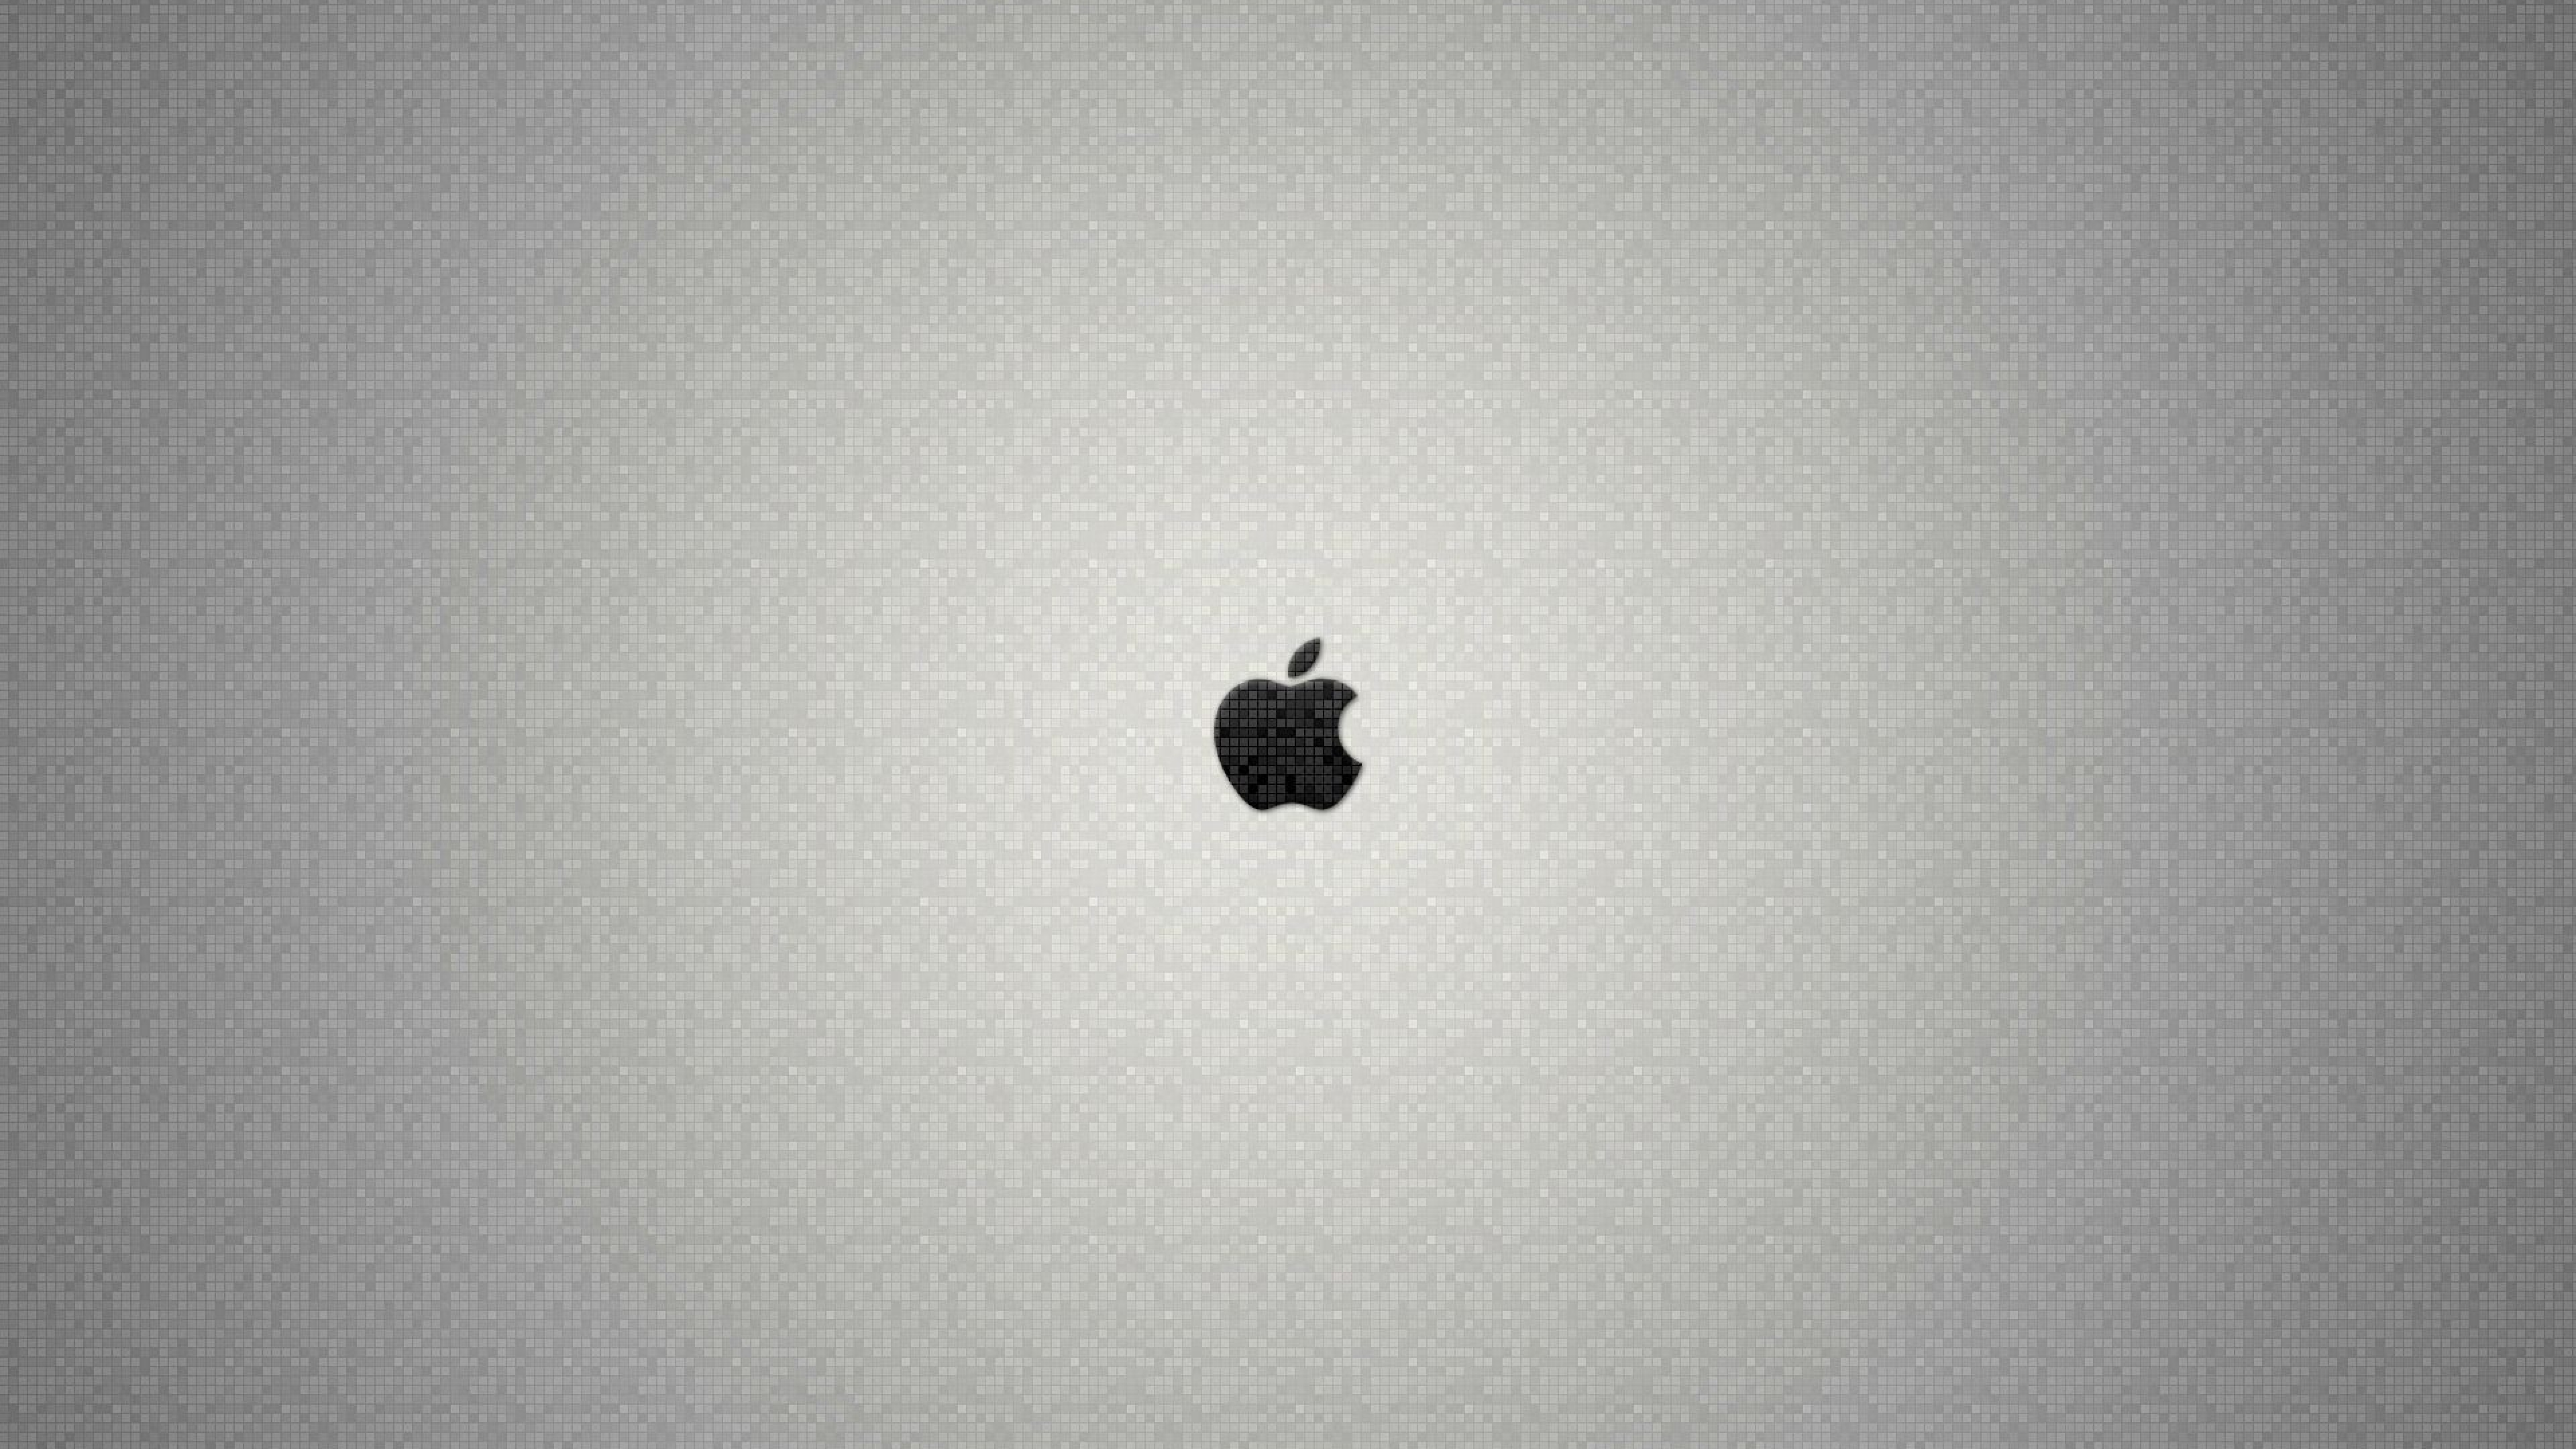 3840x2160 Wallpaper apple mac brand logo background bright firm 3840x2160